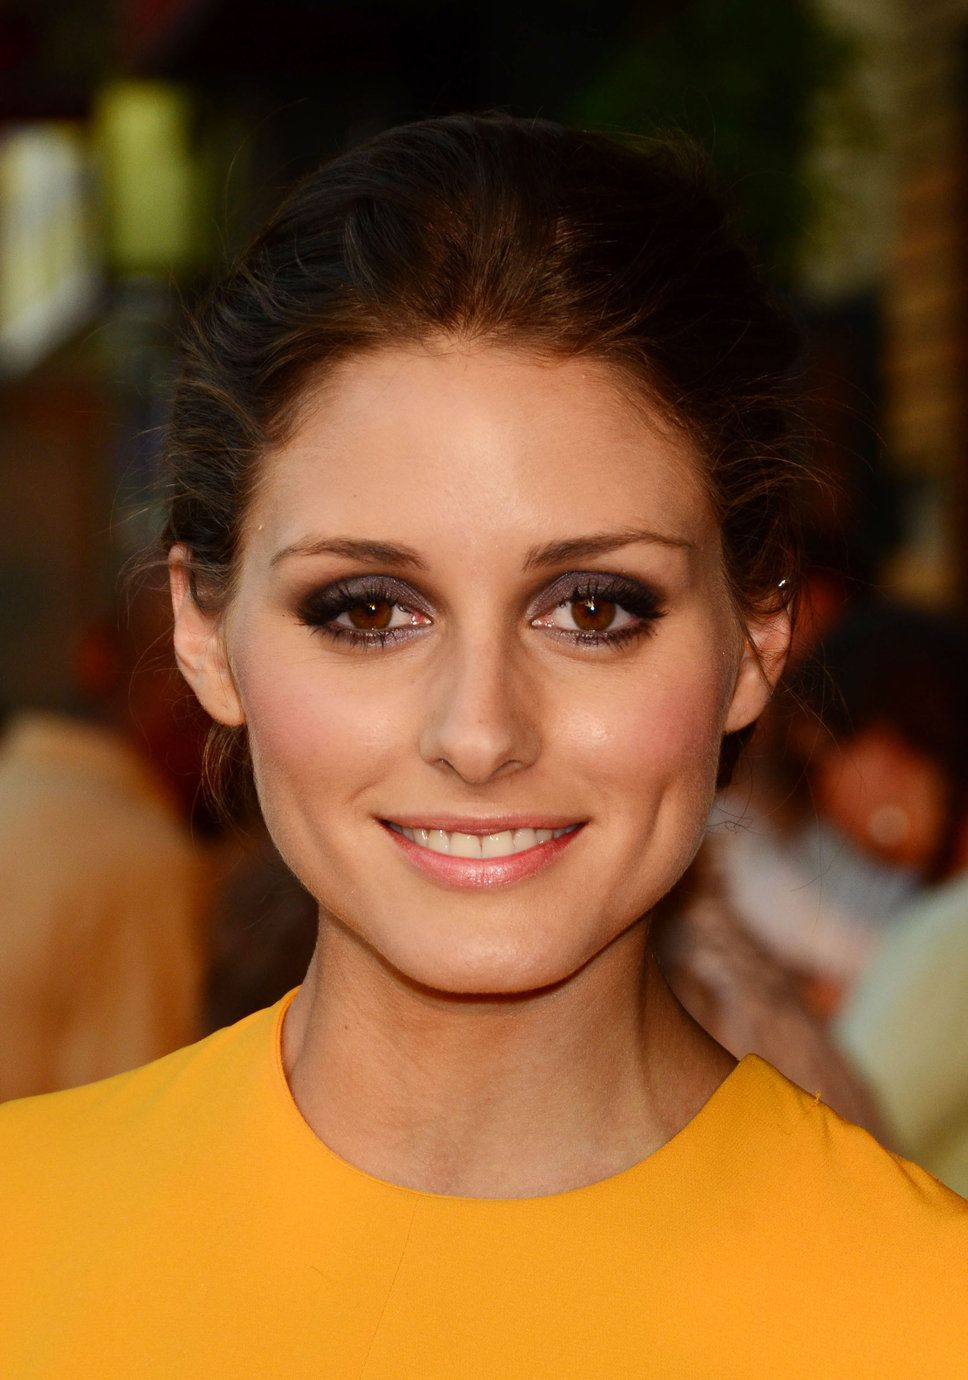 Olivia palermo brown eyeshadow sharp eye makeup evening wedding